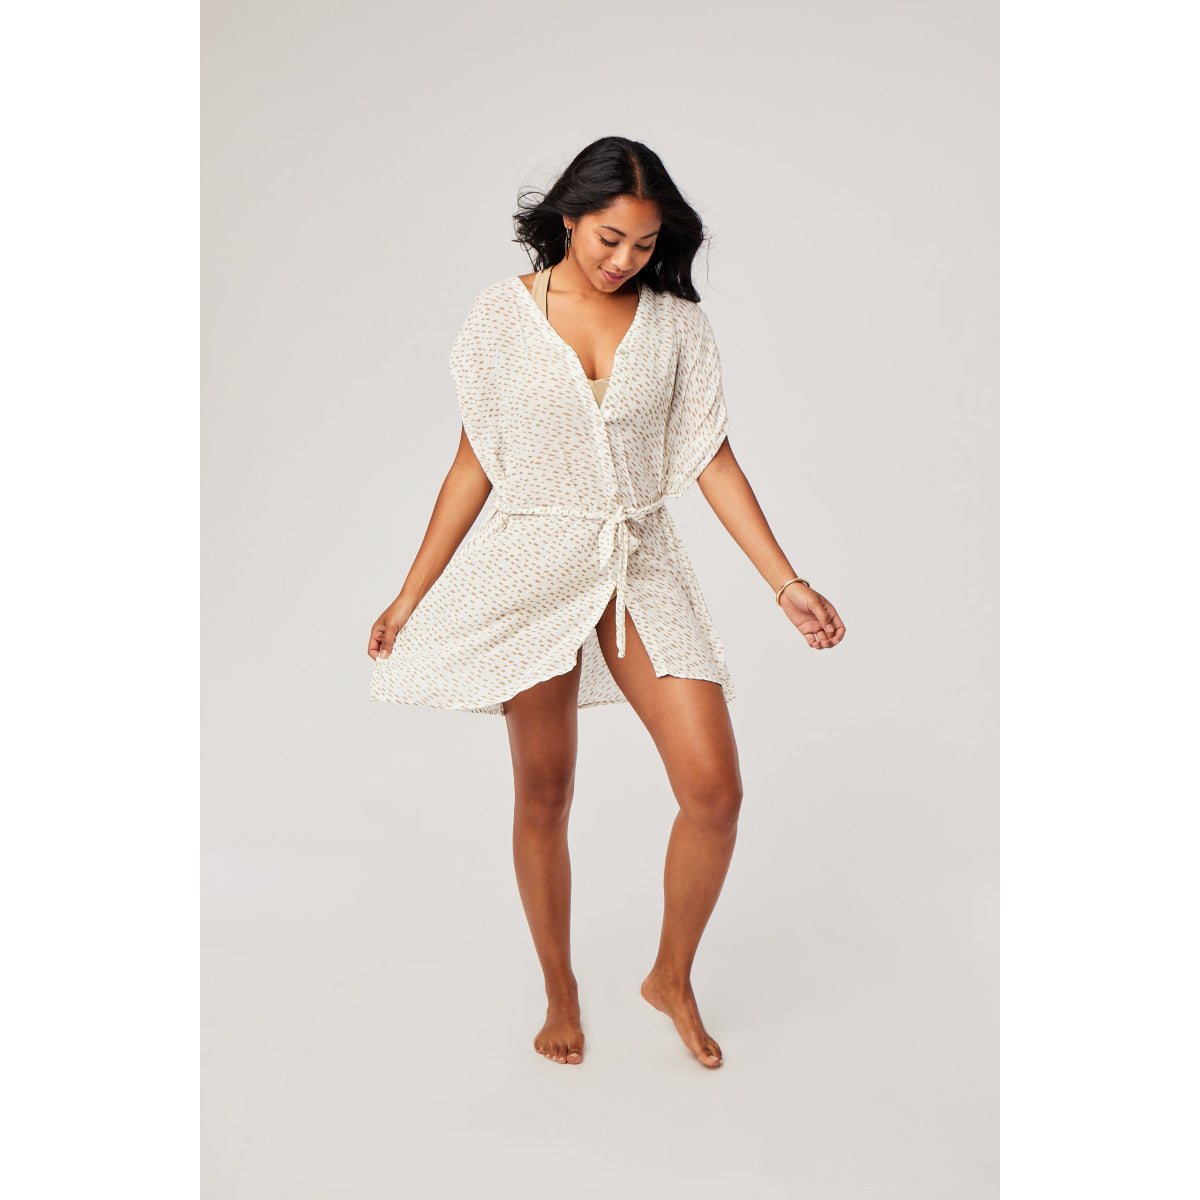 Carve Designs Iris Coverup